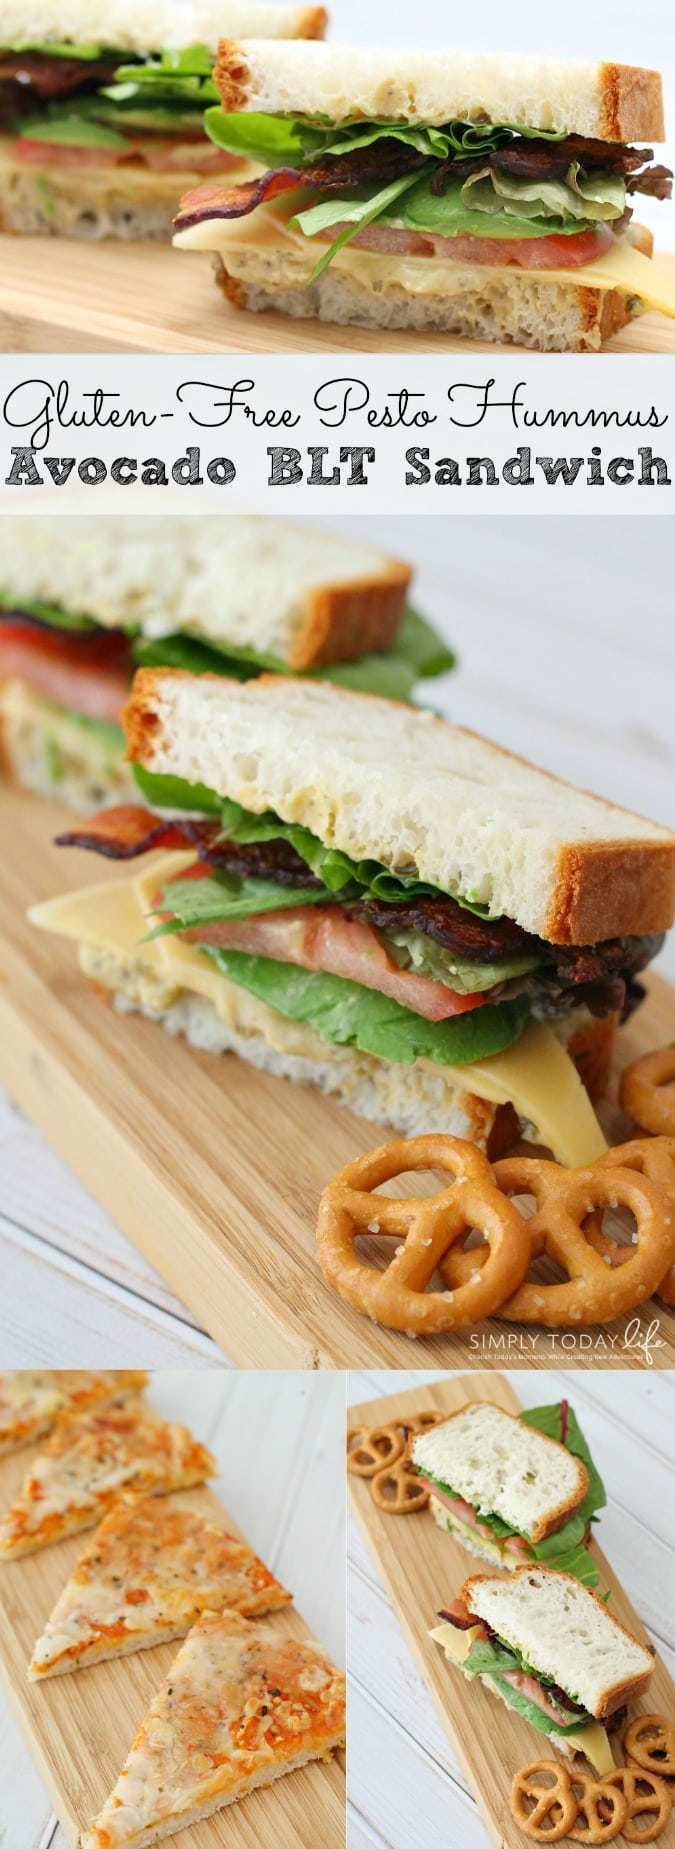 A delicious Gluten-Free Pesto Hummus Avocado BLT Sandwich Recipe perfect for bringing unique flavors to your lunch! All while keeping it gluten-free! (ad) - simplytodaylife.com